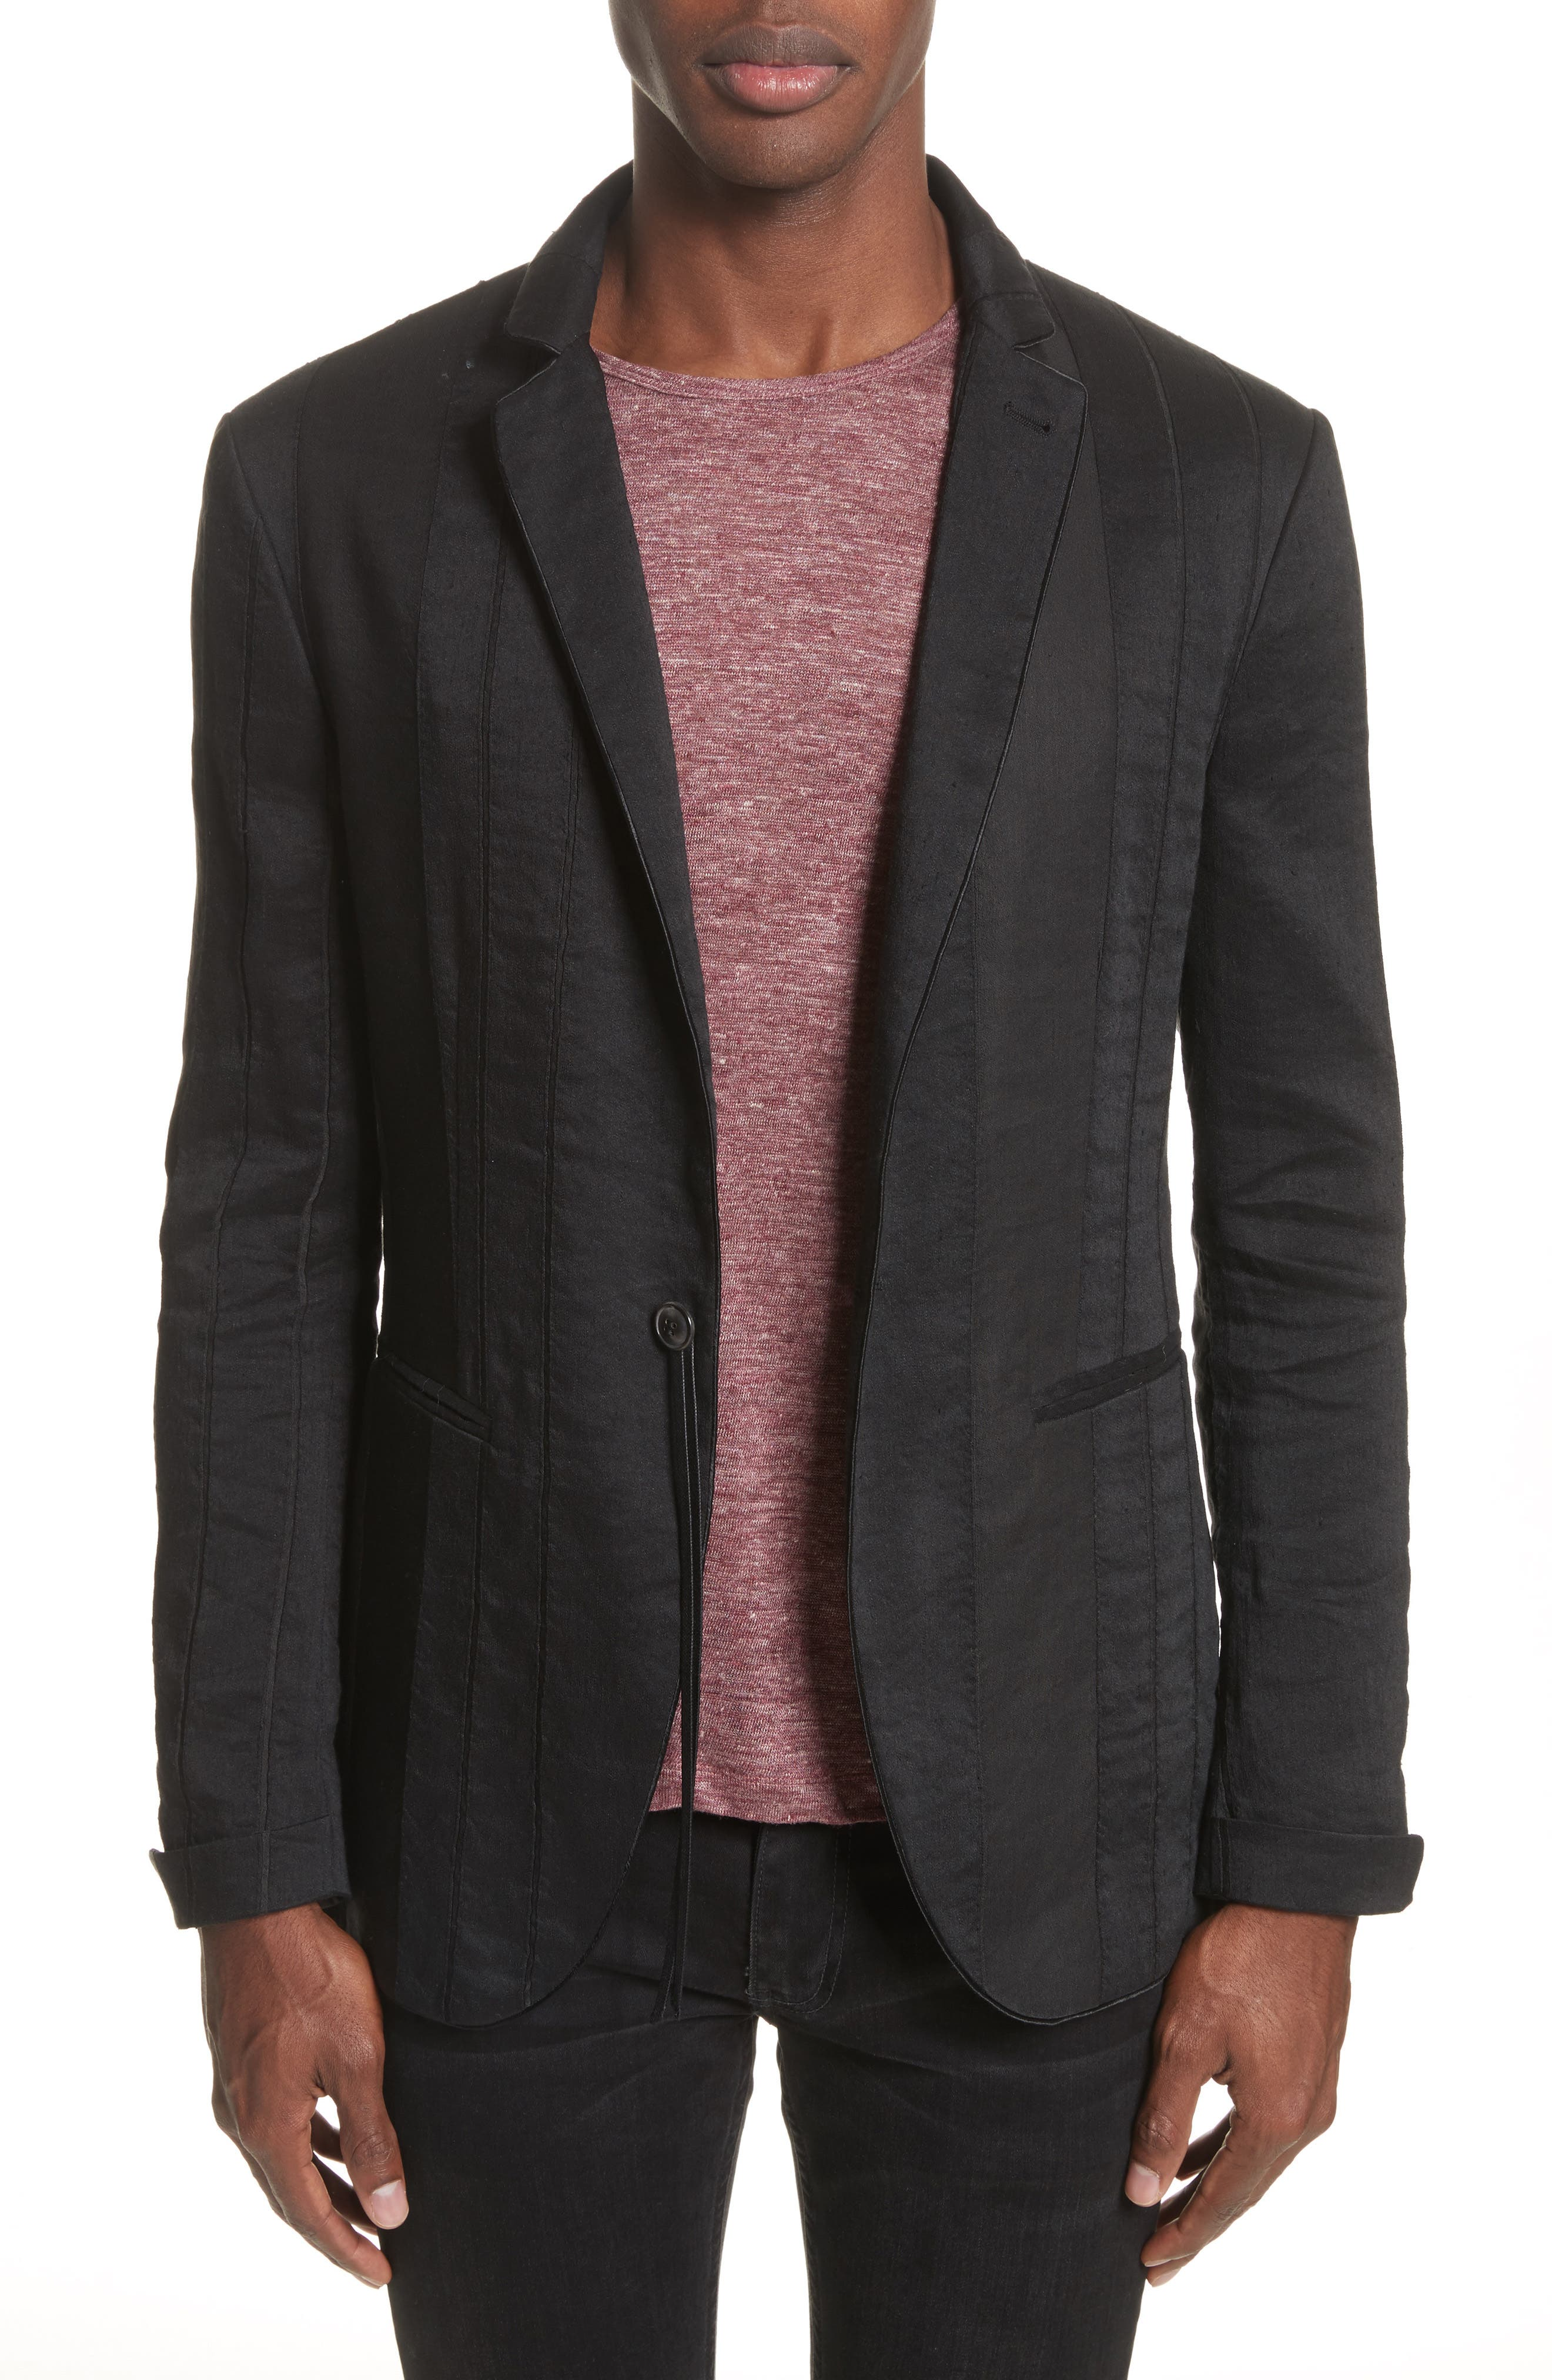 John Varvatos Slim Fit Linen Blend Blazer